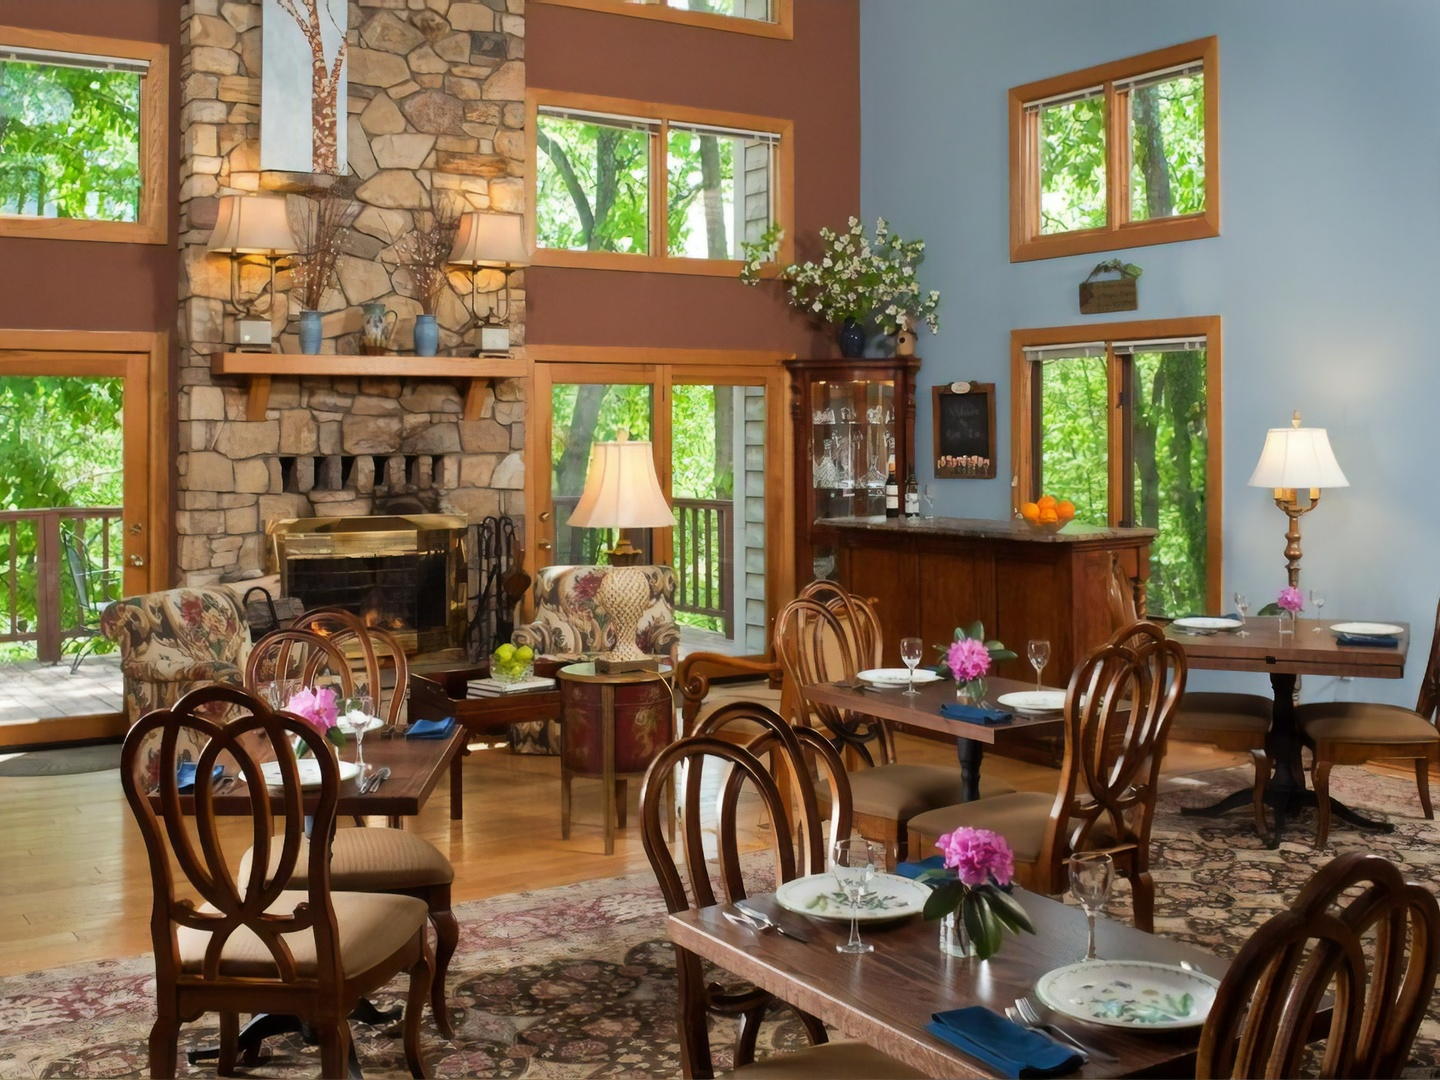 A living room filled with furniture and a fire place at Iris Inn Bed and Breakfast.